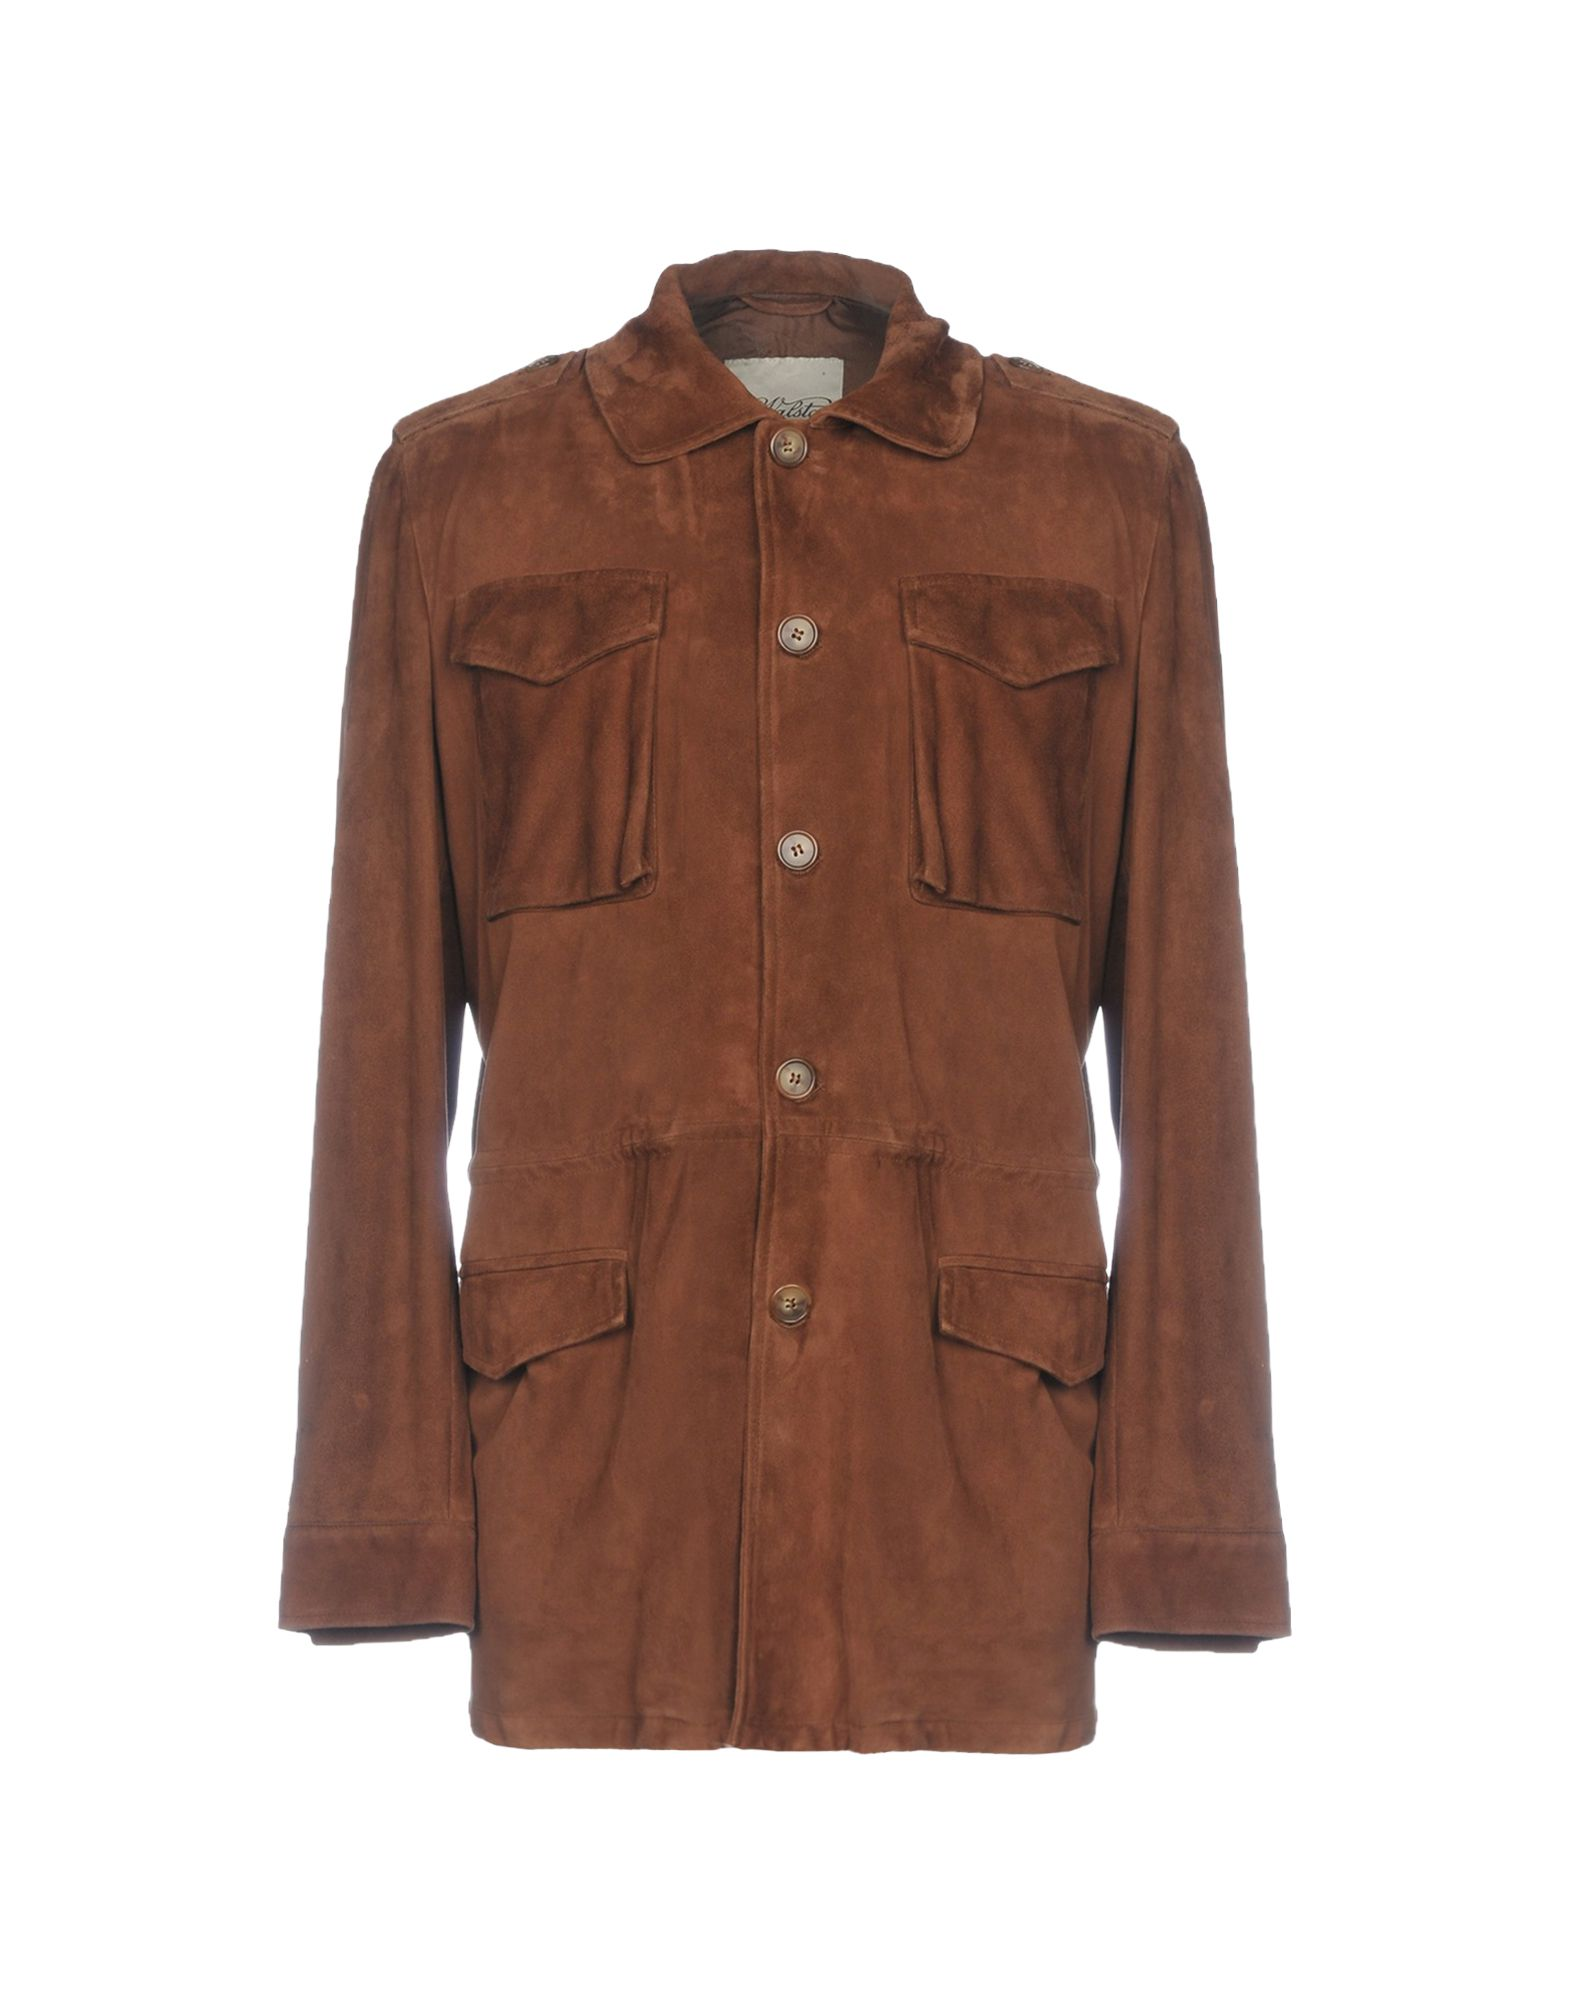 VALSTAR Leather Jacket in Cocoa